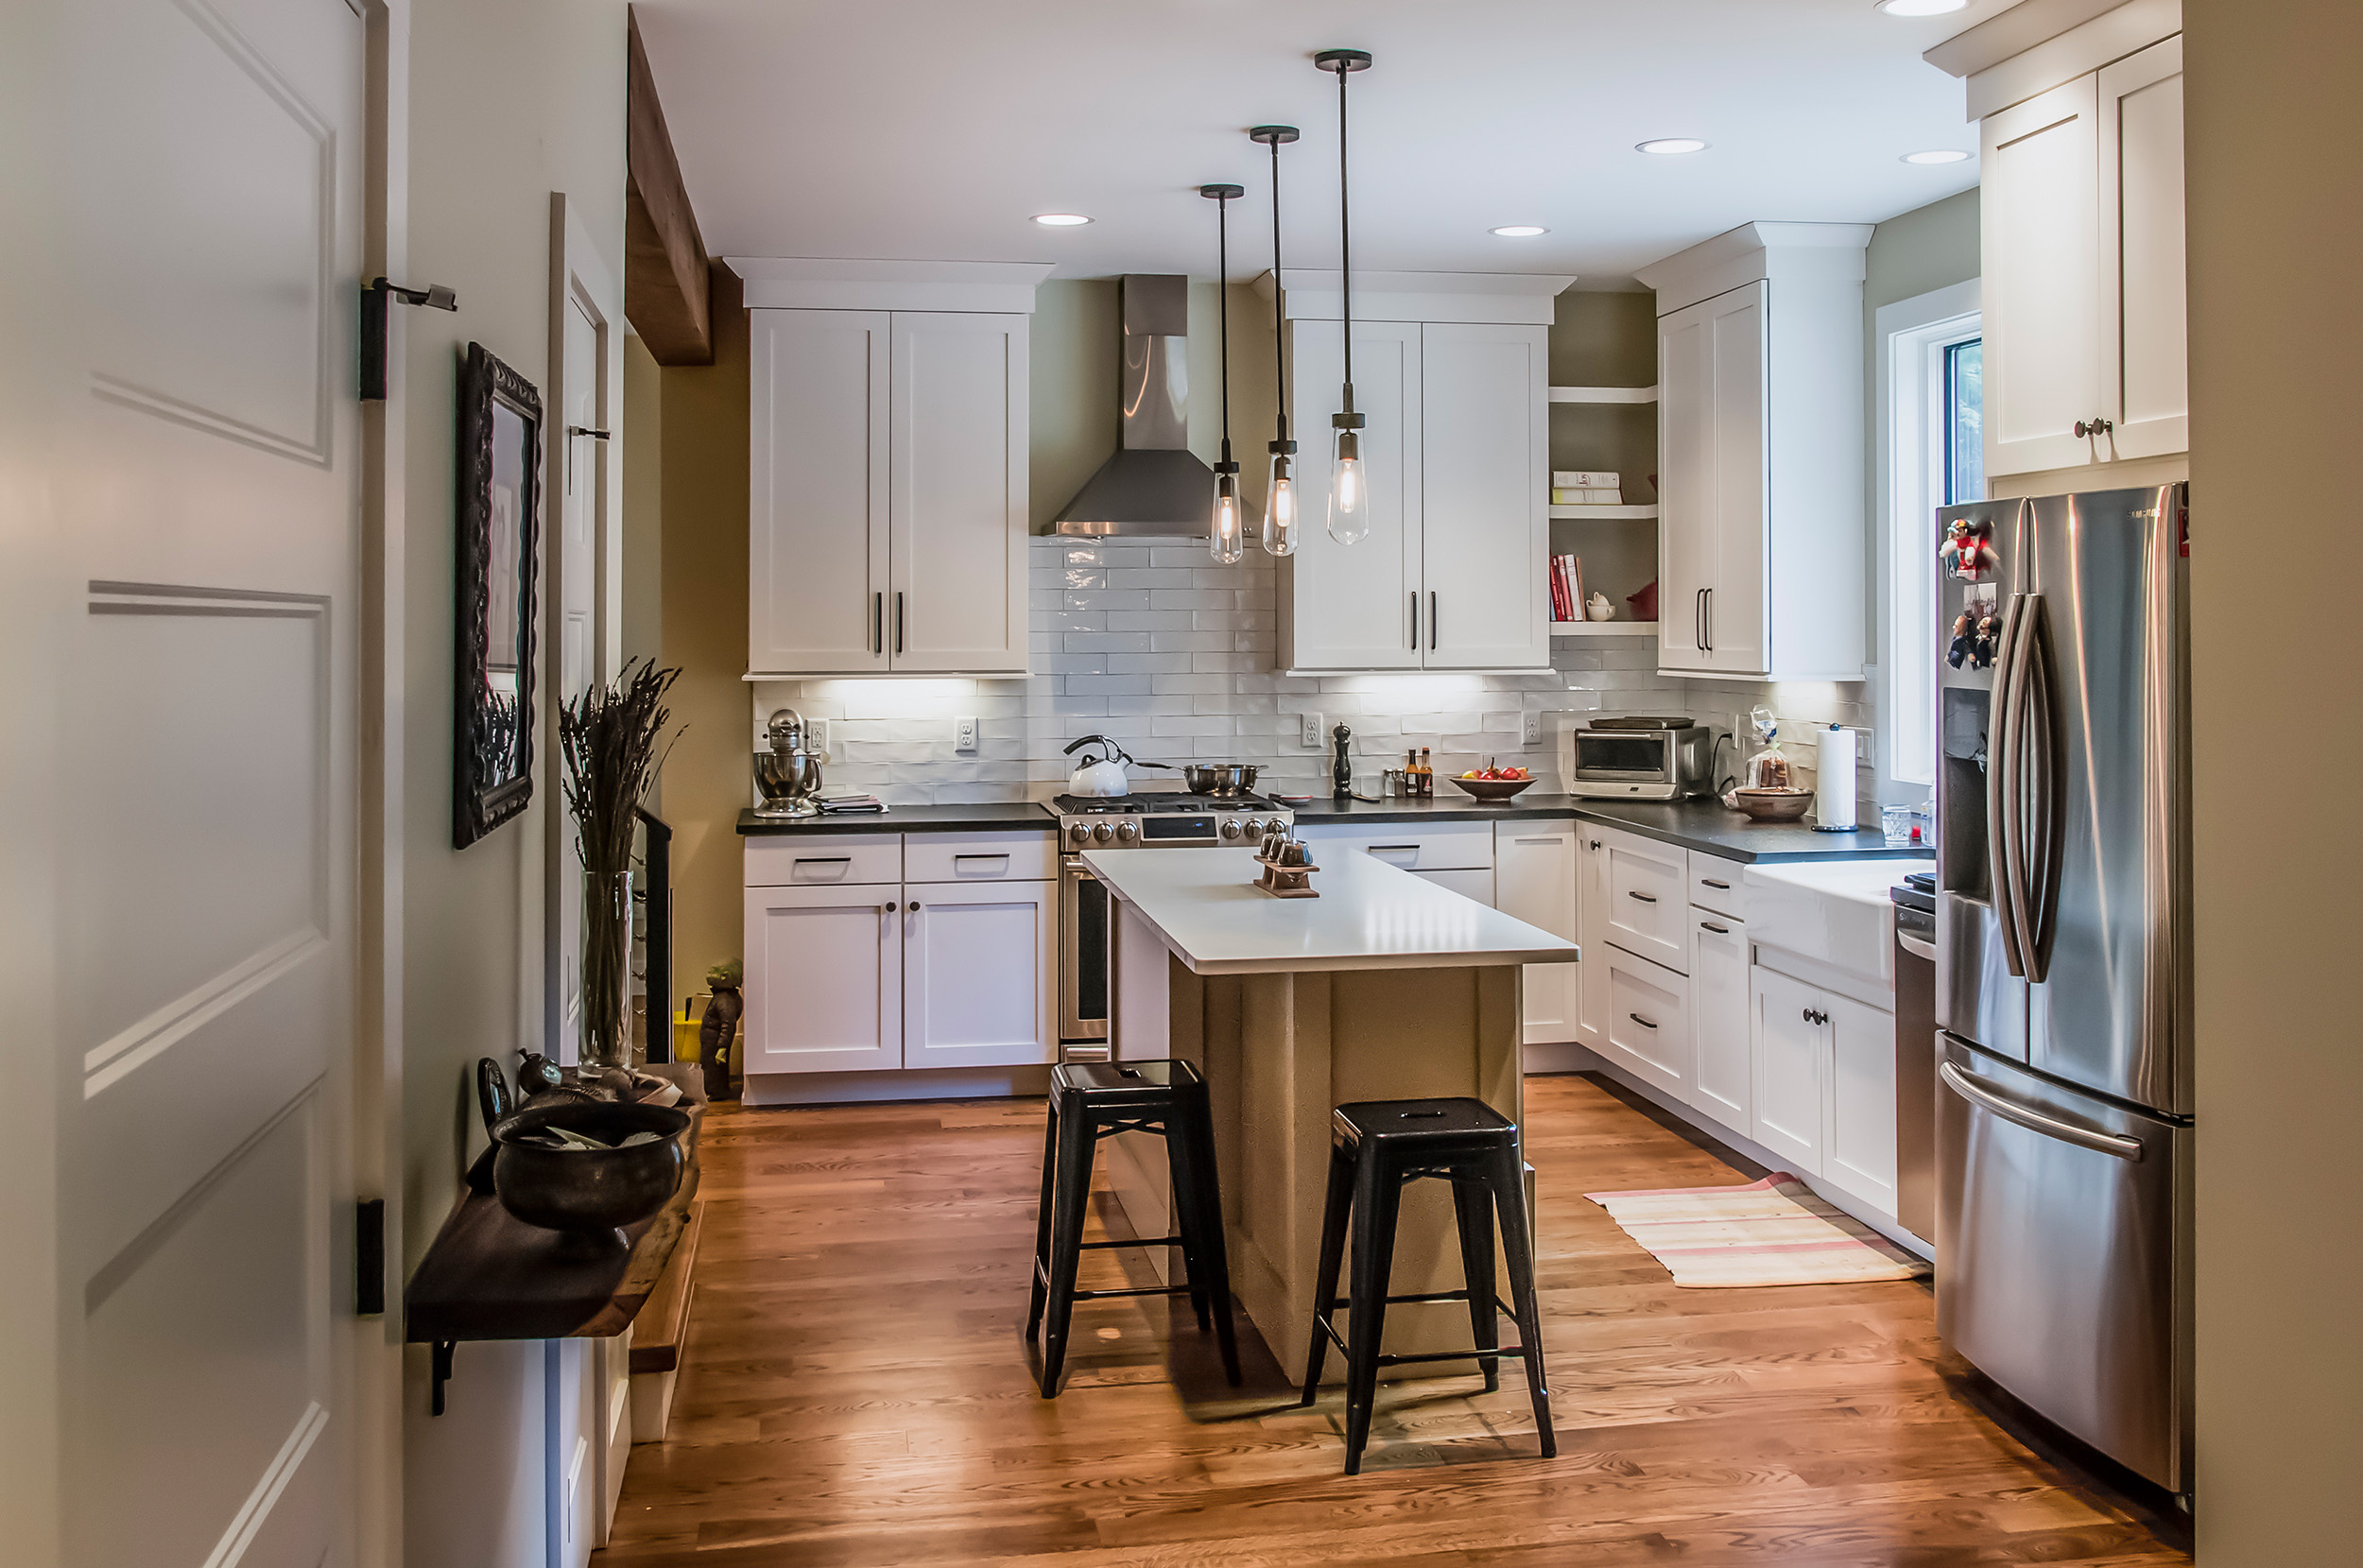 Young-05-kitchen.jpg